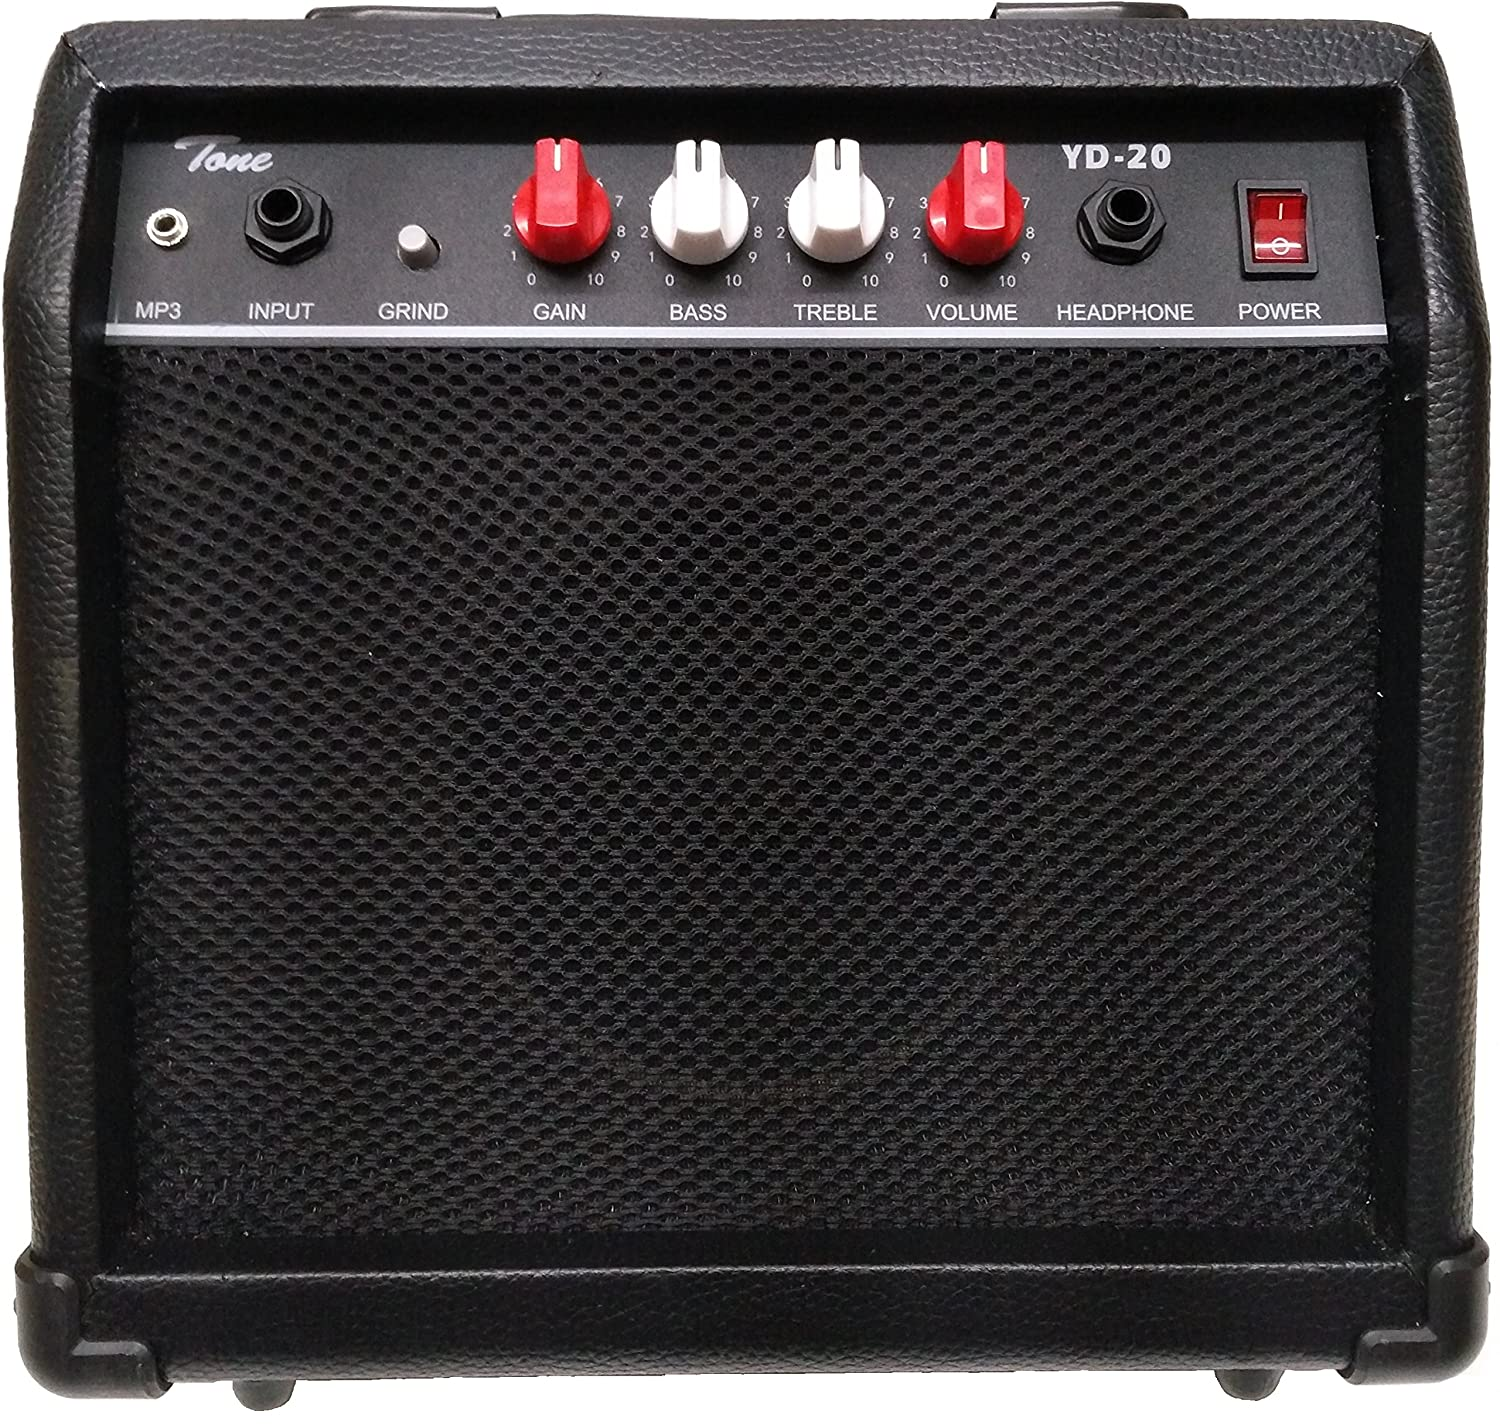 Tone YD-20 Electric Guitar Practice Amplifier (Black)